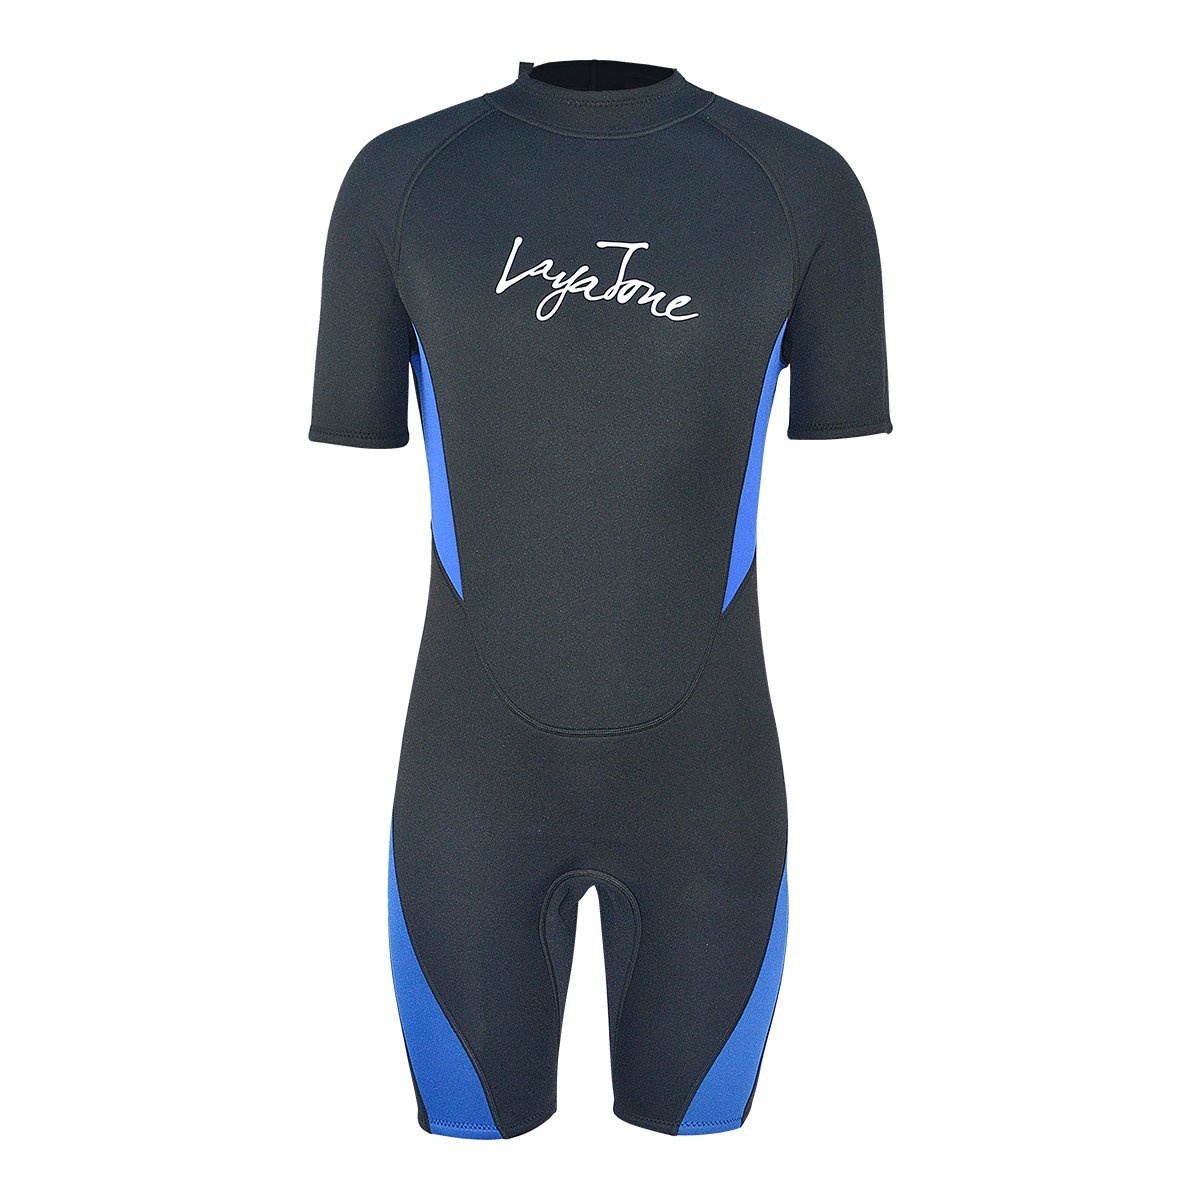 Layatone 3mm Shorty Wetsuit Adults Scuba Diving Suit Men Women Neoprene Wetsuits Thermal One Piece Swimsuit Surf Suit Shorty Suits (Blue,5XL) by Layatone